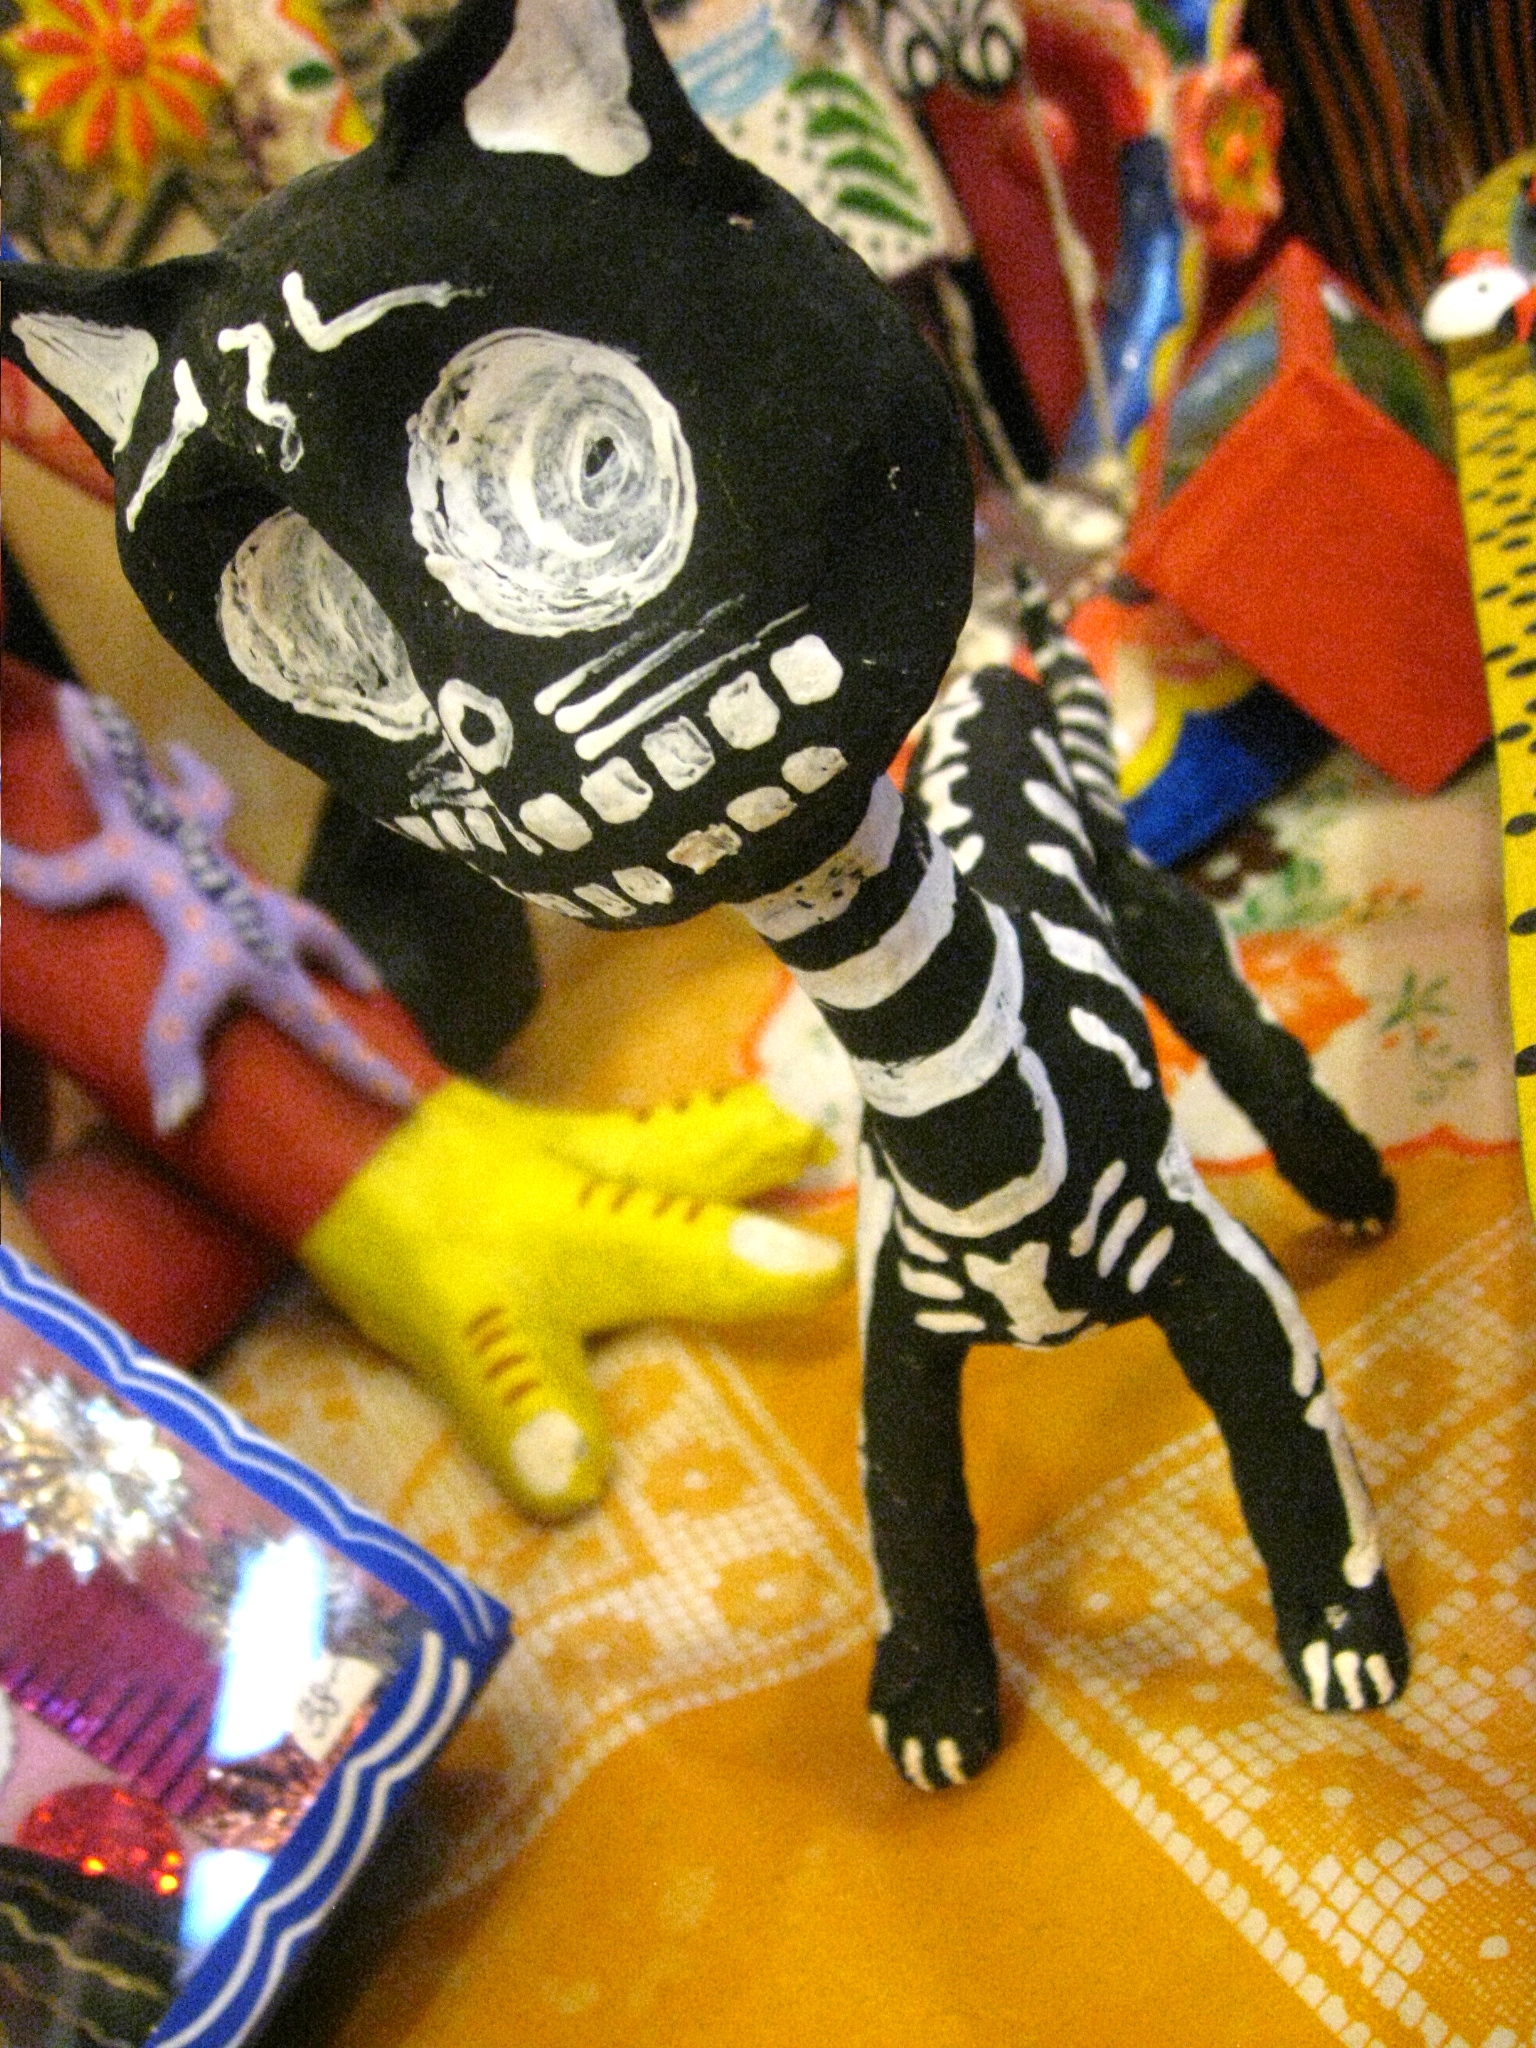 New! Day of the Dead Figurines, Wall Hangings, and More! – Eye\'s Gallery